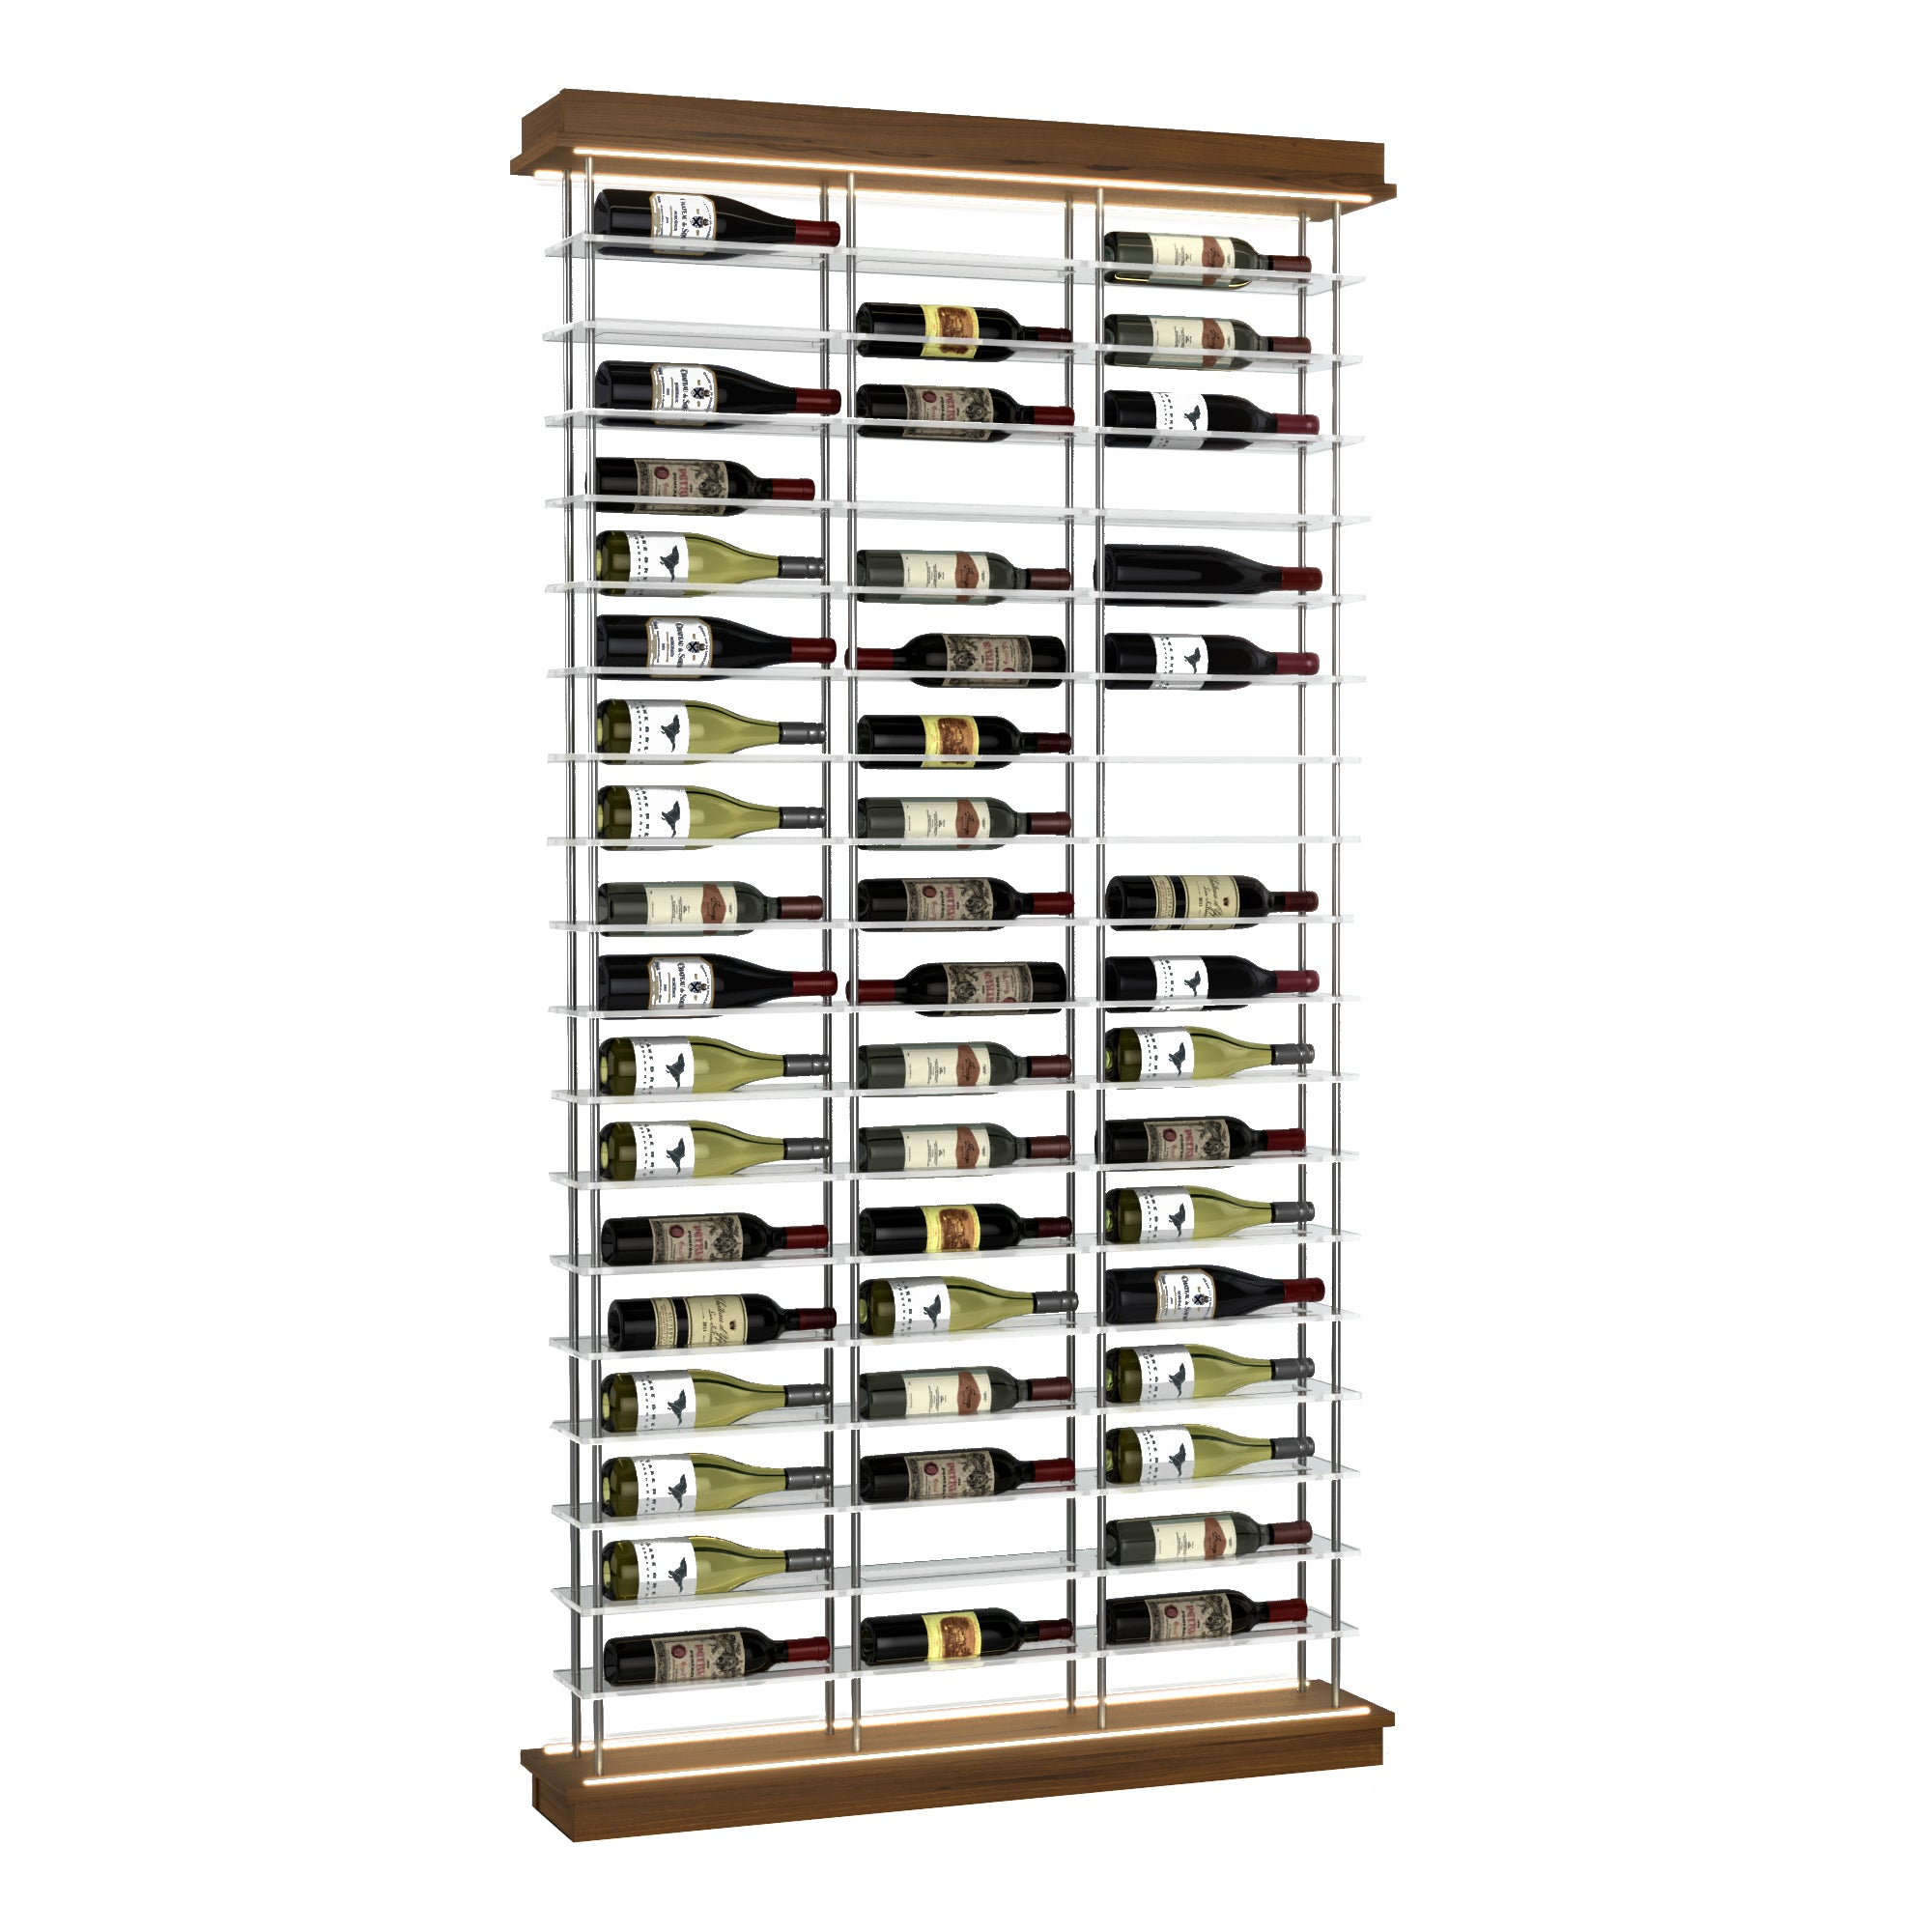 54-Bottle Elevation Wine Rack, Label Forward, Modern Wine Storage, Kessick